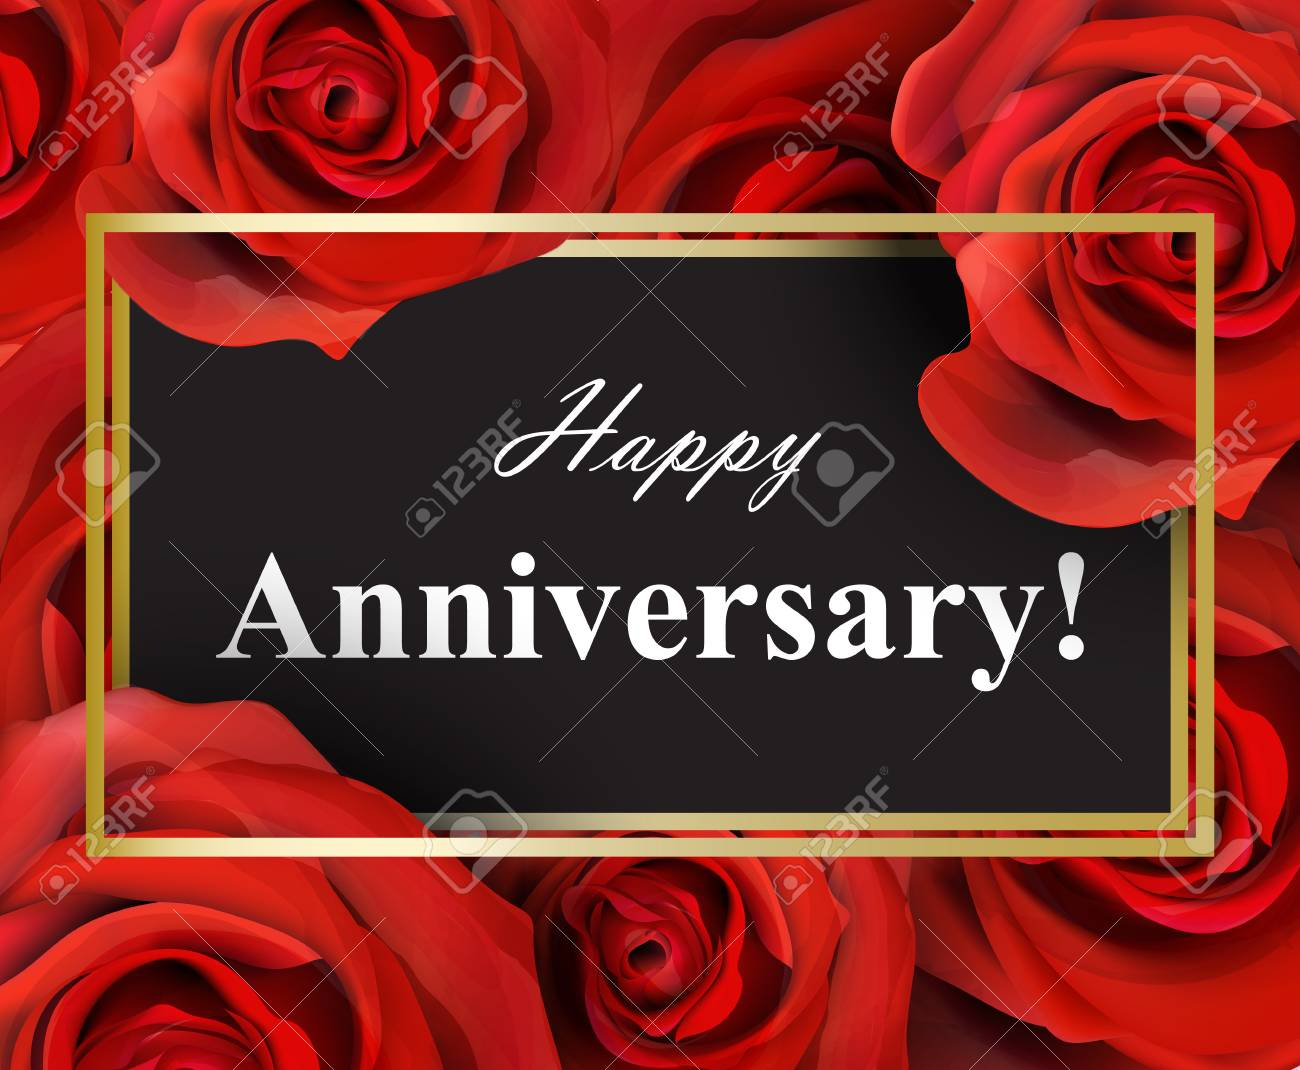 Happy Anniversary Greeting Card With Red Roses Background Royalty